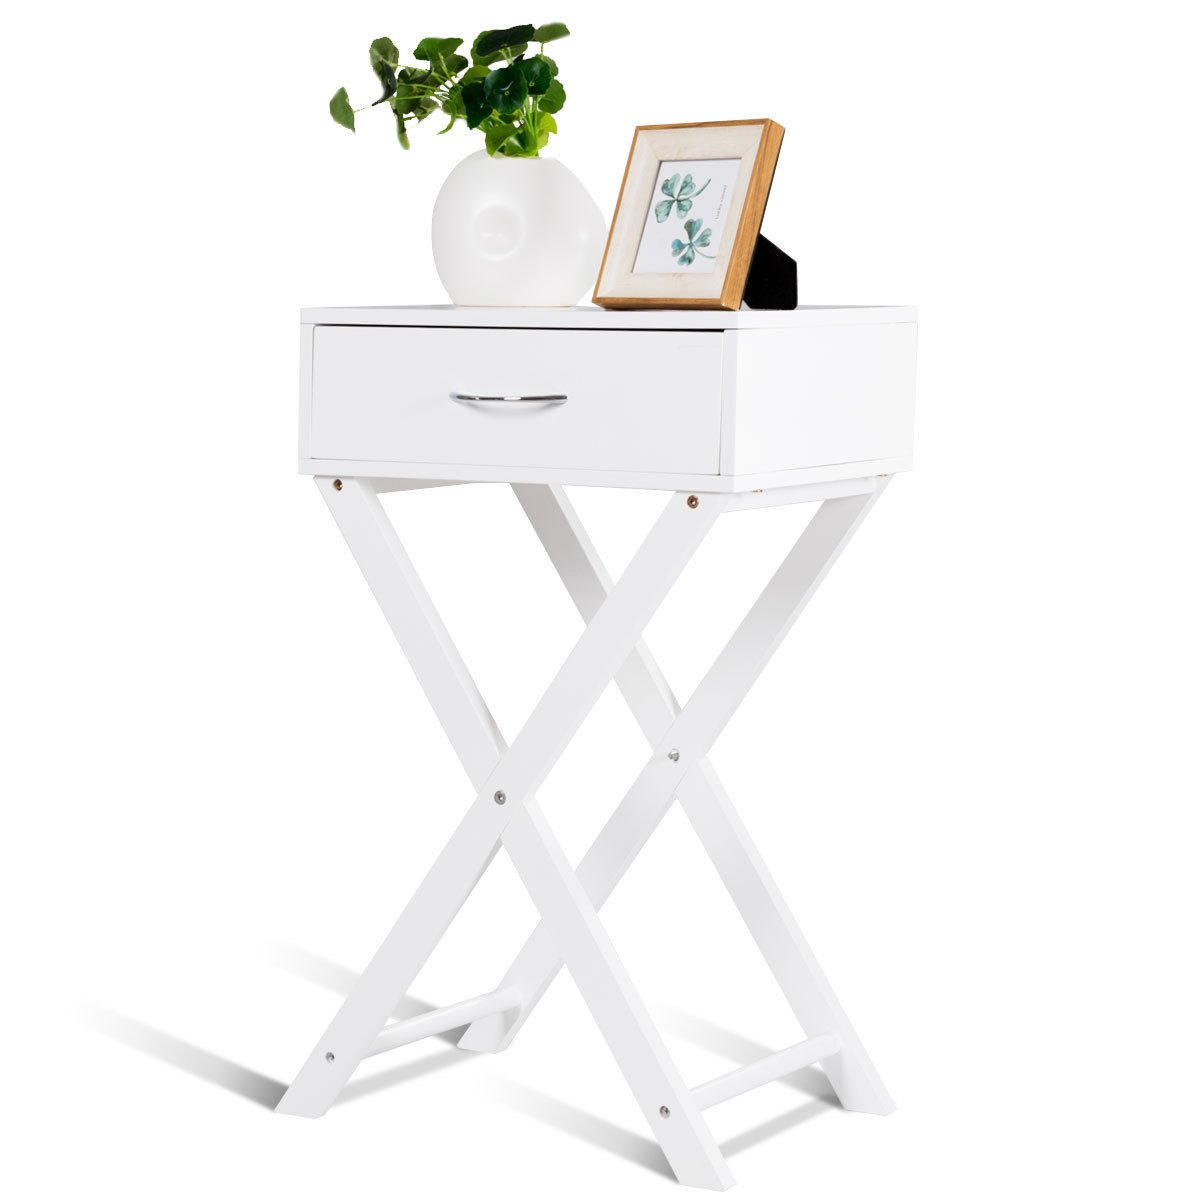 way nightstand shape drawer accent side end table with modern home furniture white small poolside tables elephant sculpture black gloss coffee contemporary wall clocks barnwood